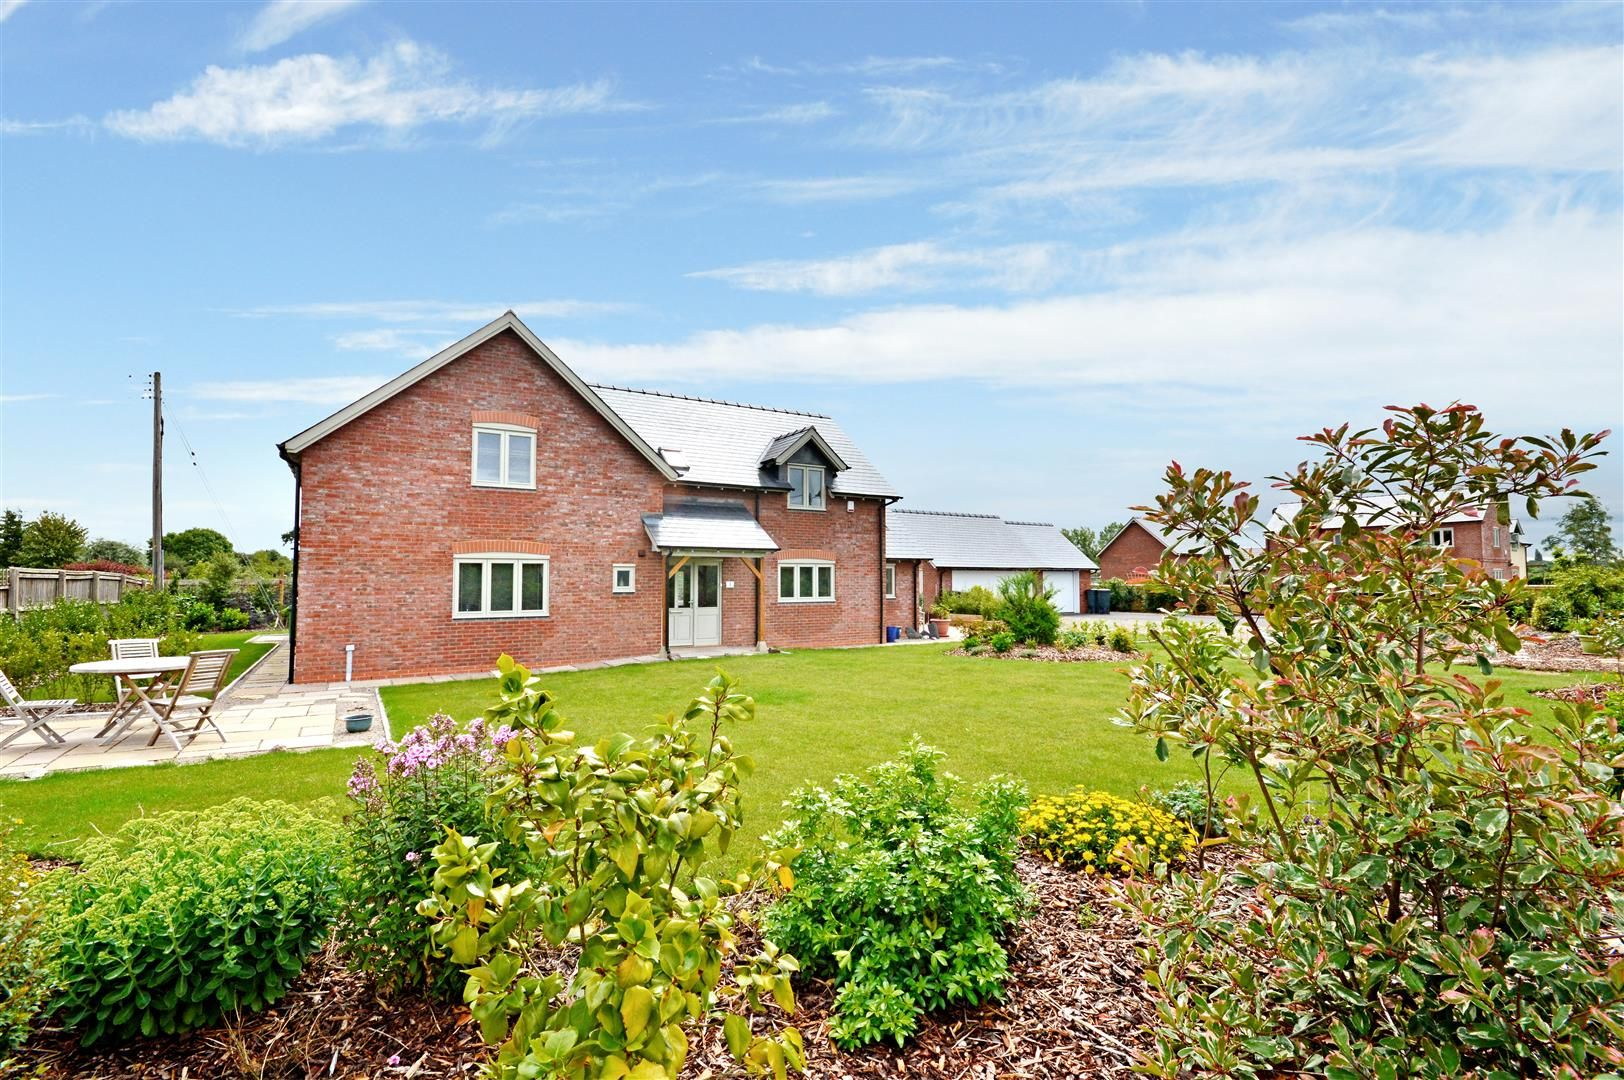 4 bed detached for sale in Swainshill/Breinton, HR4